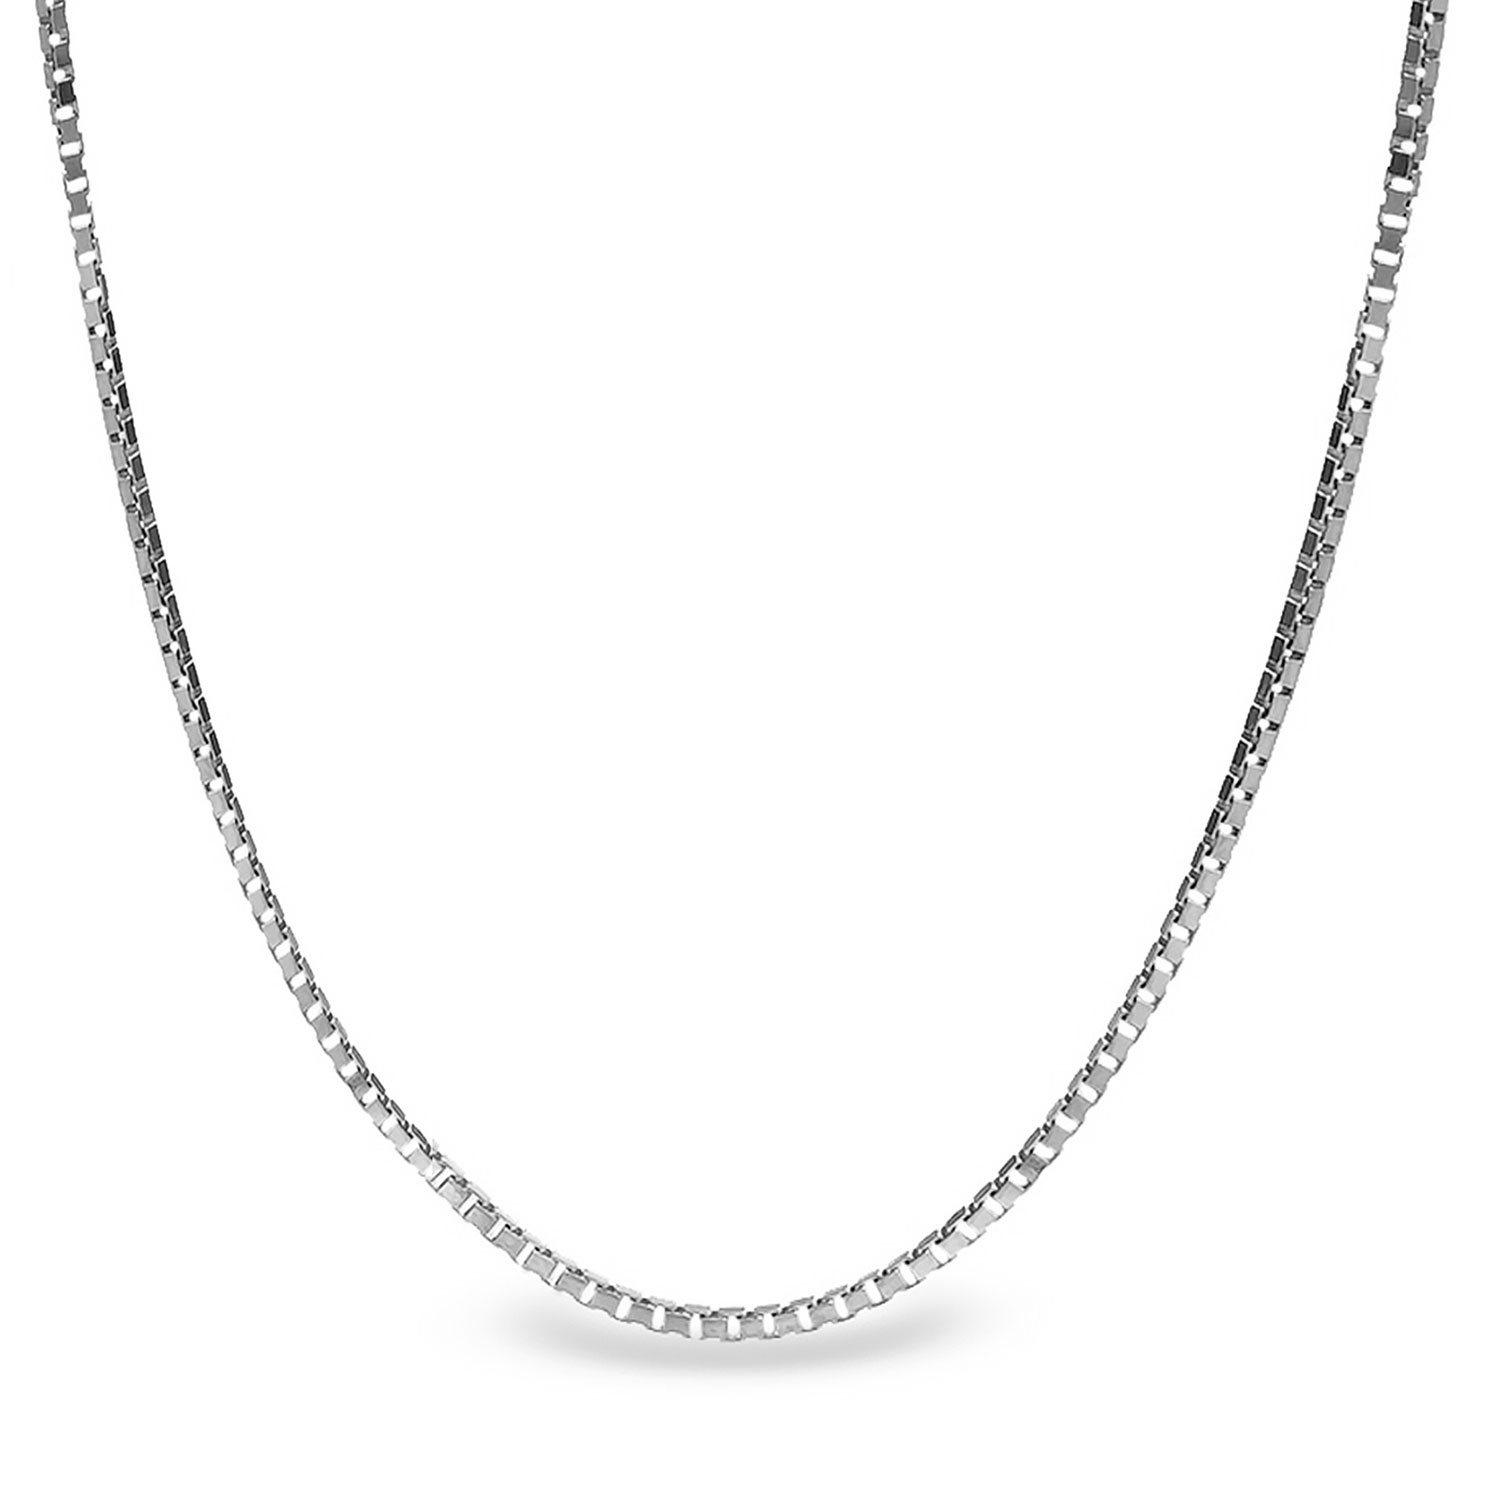 Box Chain Sterling Silver Necklace - 30 in.